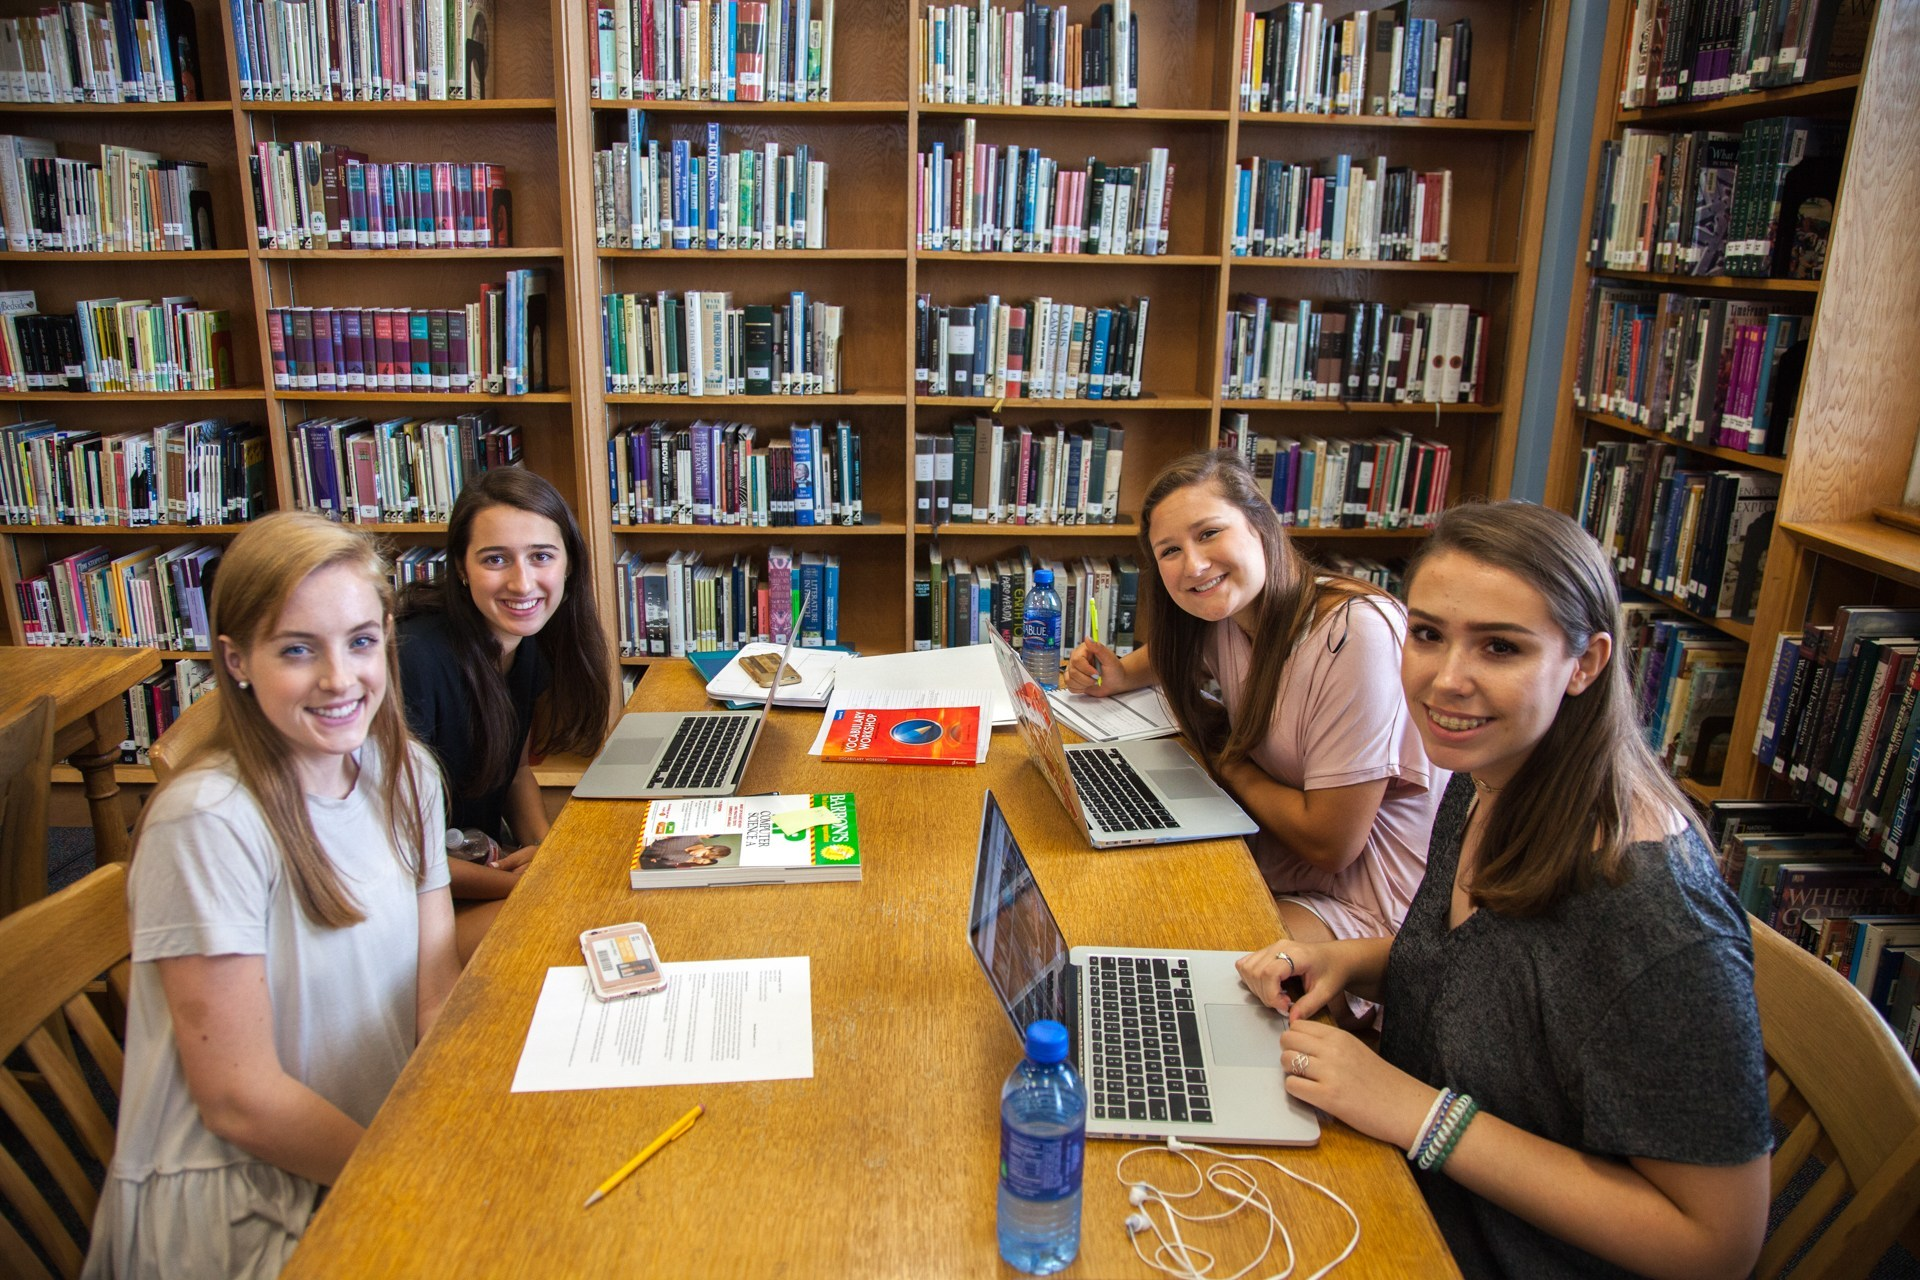 Four HPHS students work together in the school library